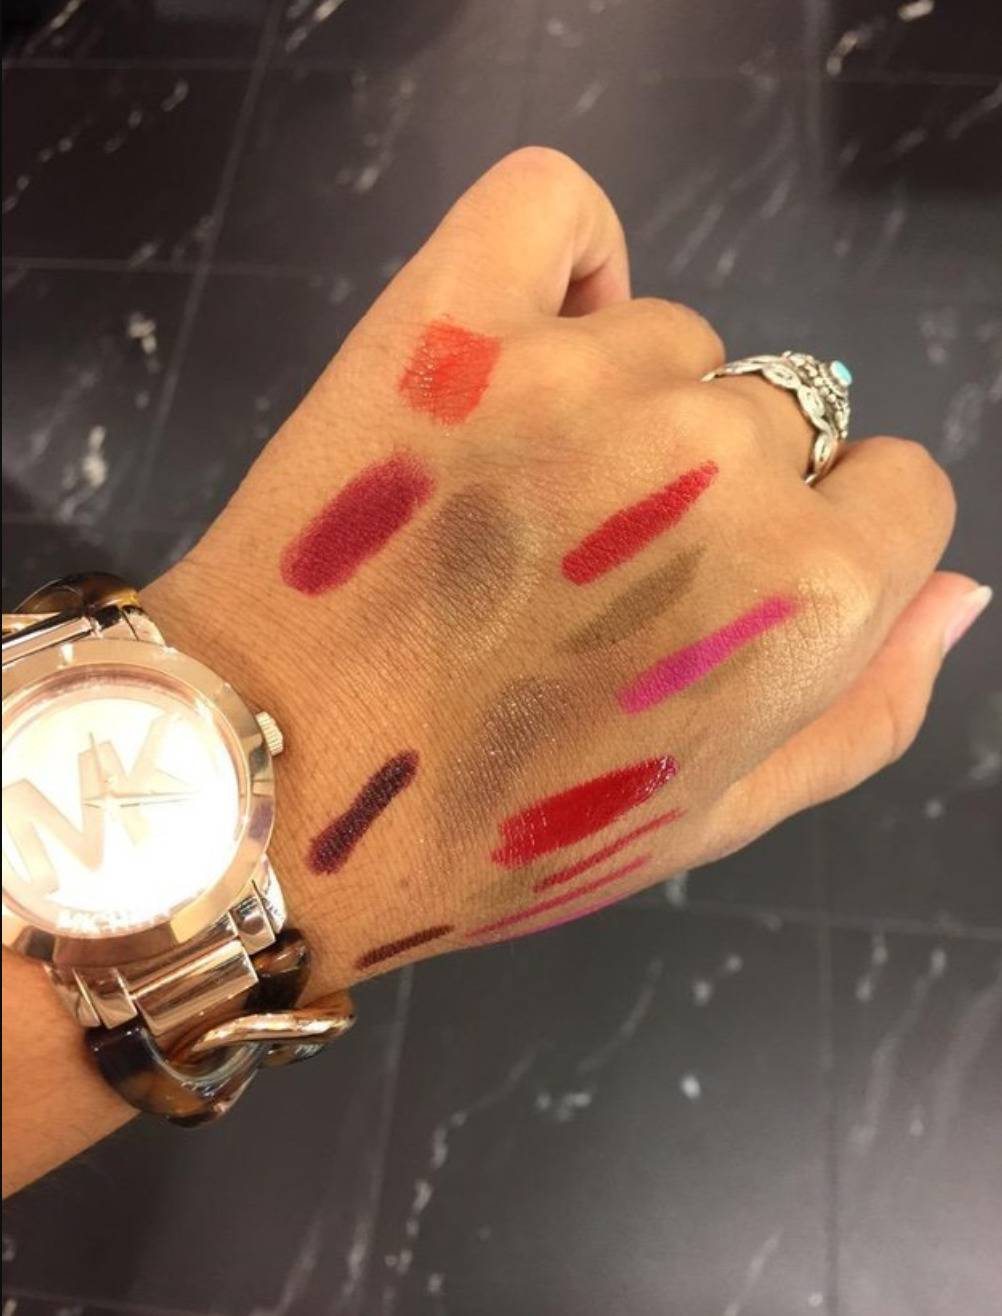 woman with a bunch of makeup tests on her hand